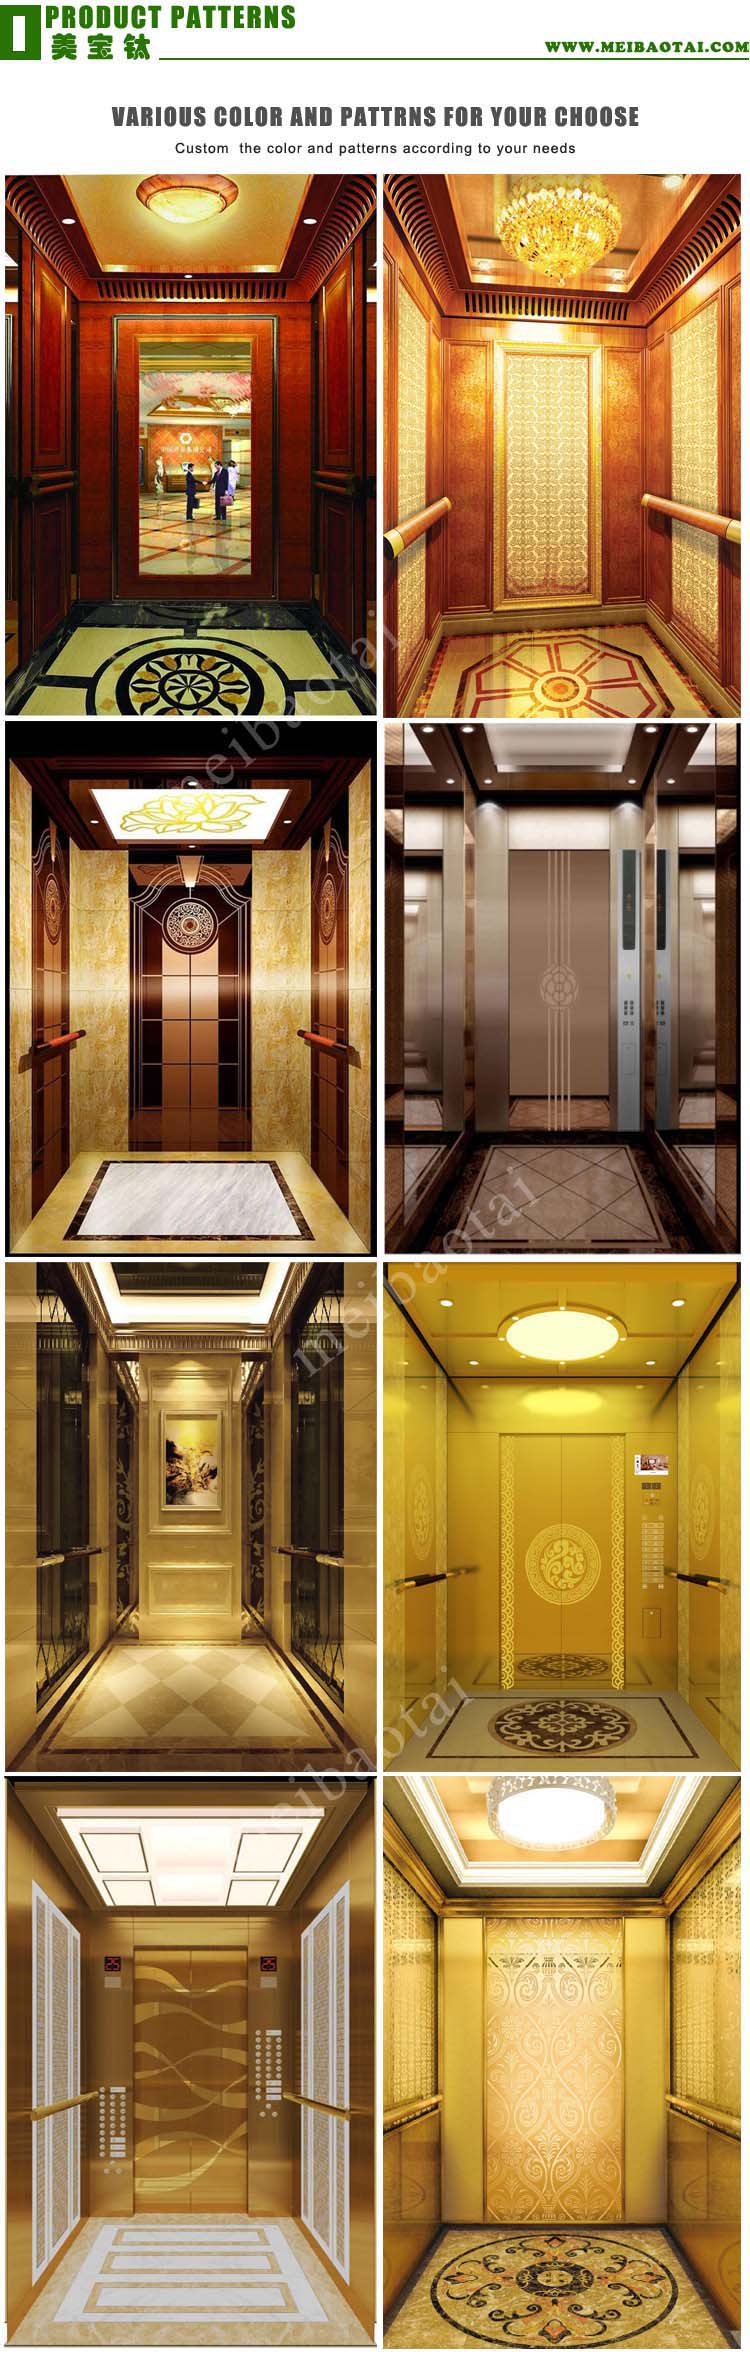 elevator_products_patterns